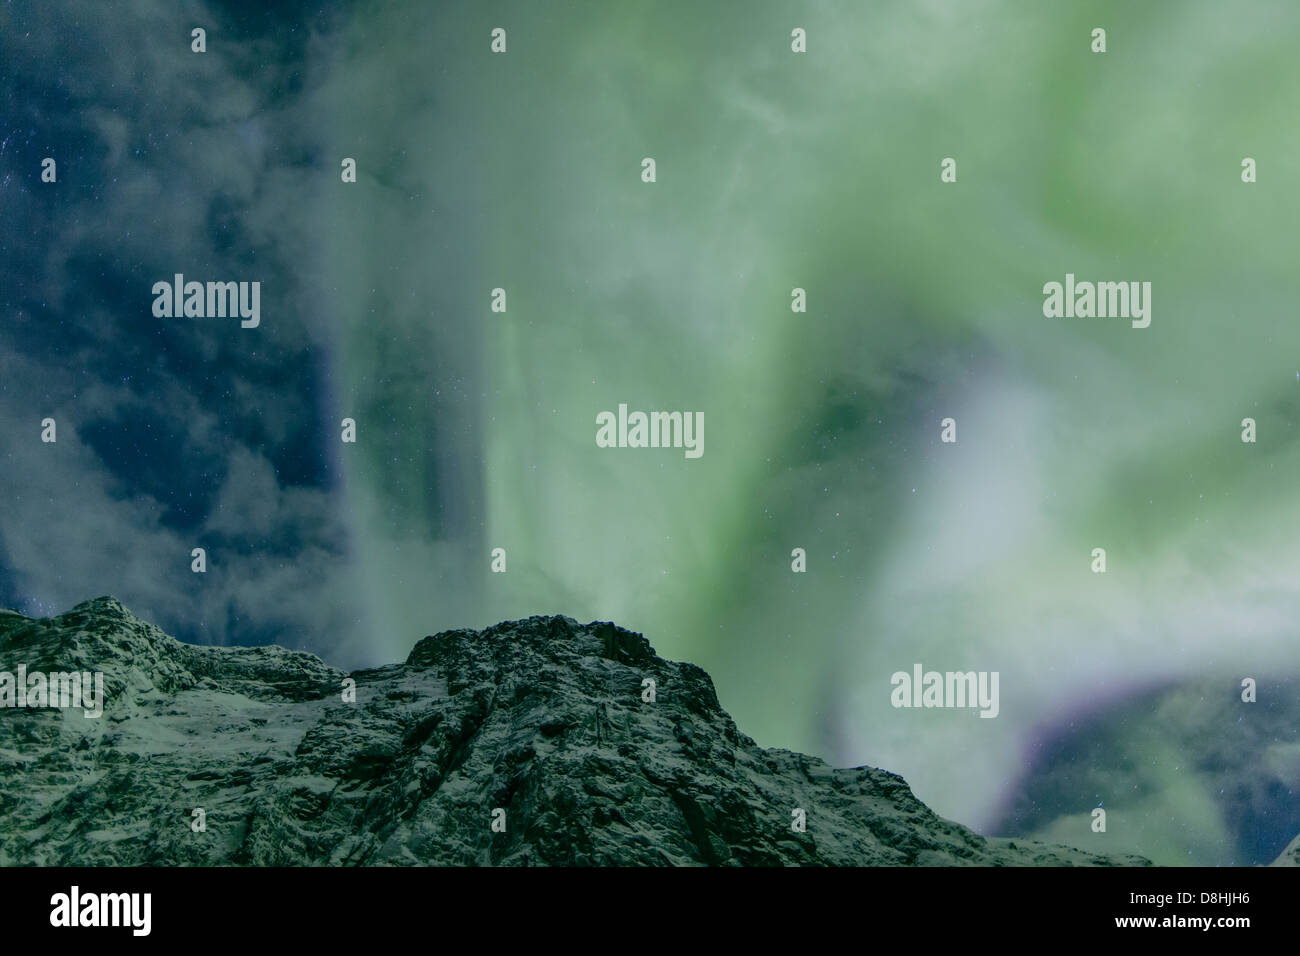 Aurora Borealis, Northern Lights, Troms region, Norway - Stock Image